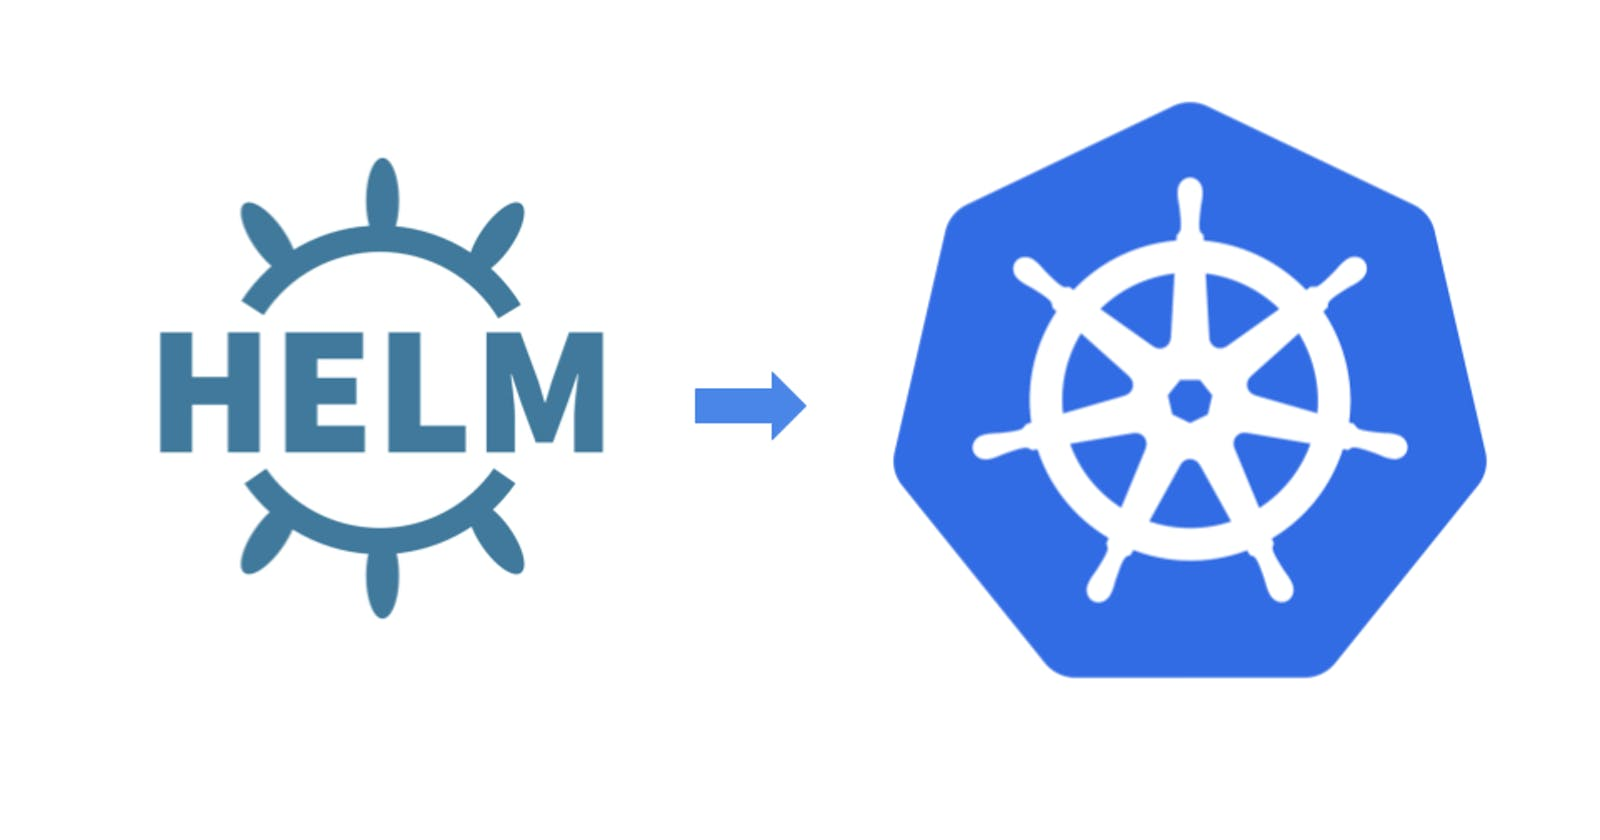 Helm - Package manager for Kubernetes